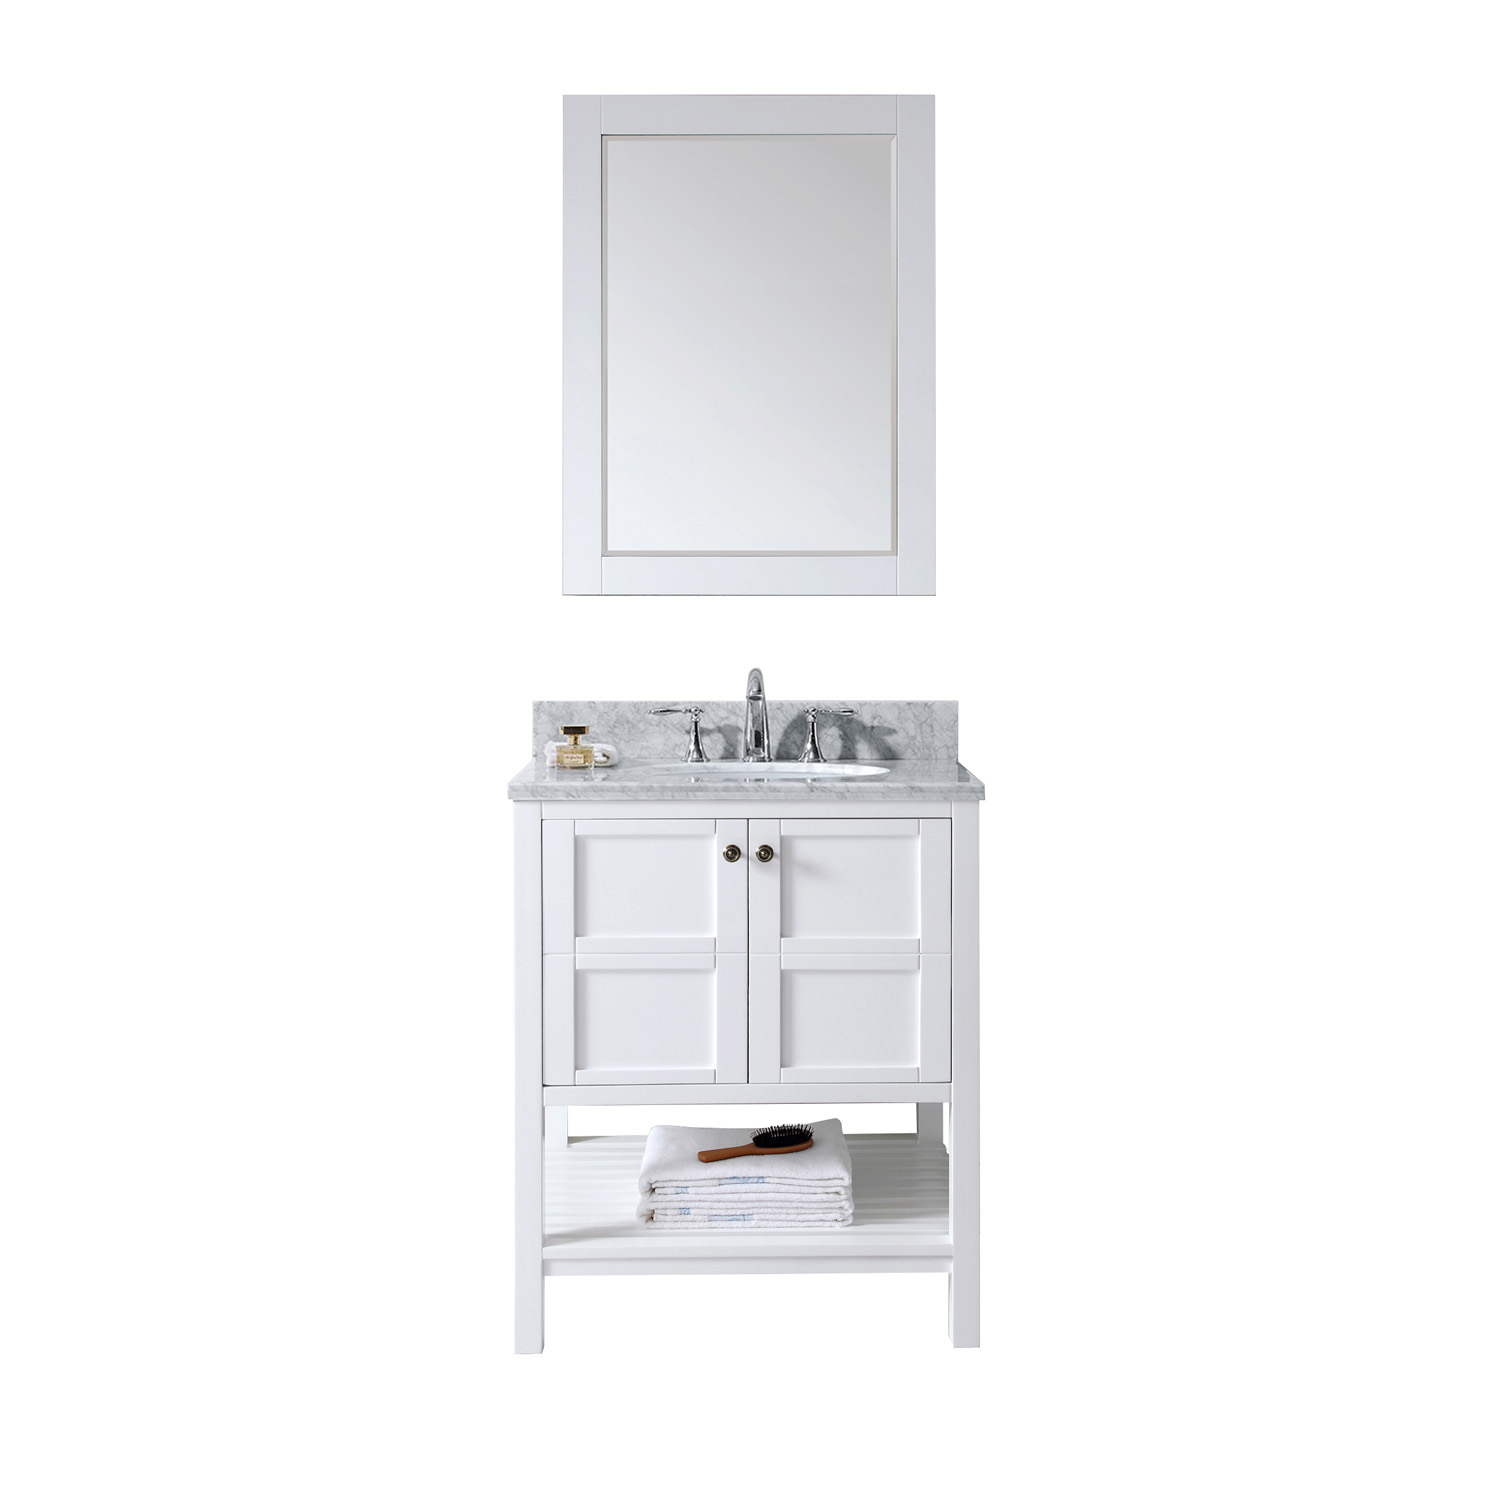 "30"" Single Bath Vanity in White with Top, Sink and Mirror Options"